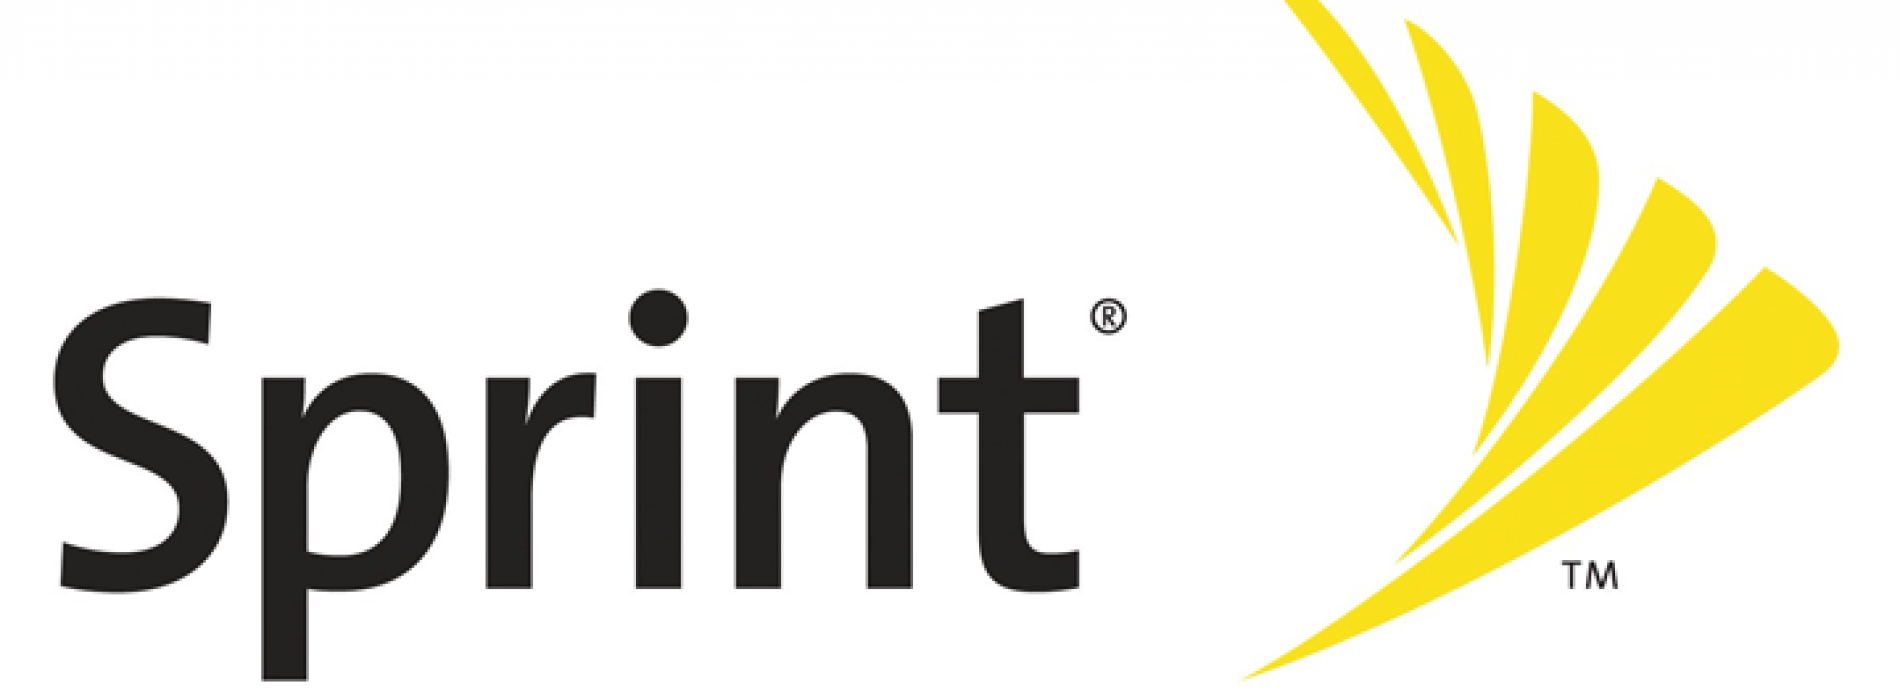 Sprint extends push-to-talk feature to new Android devices with app